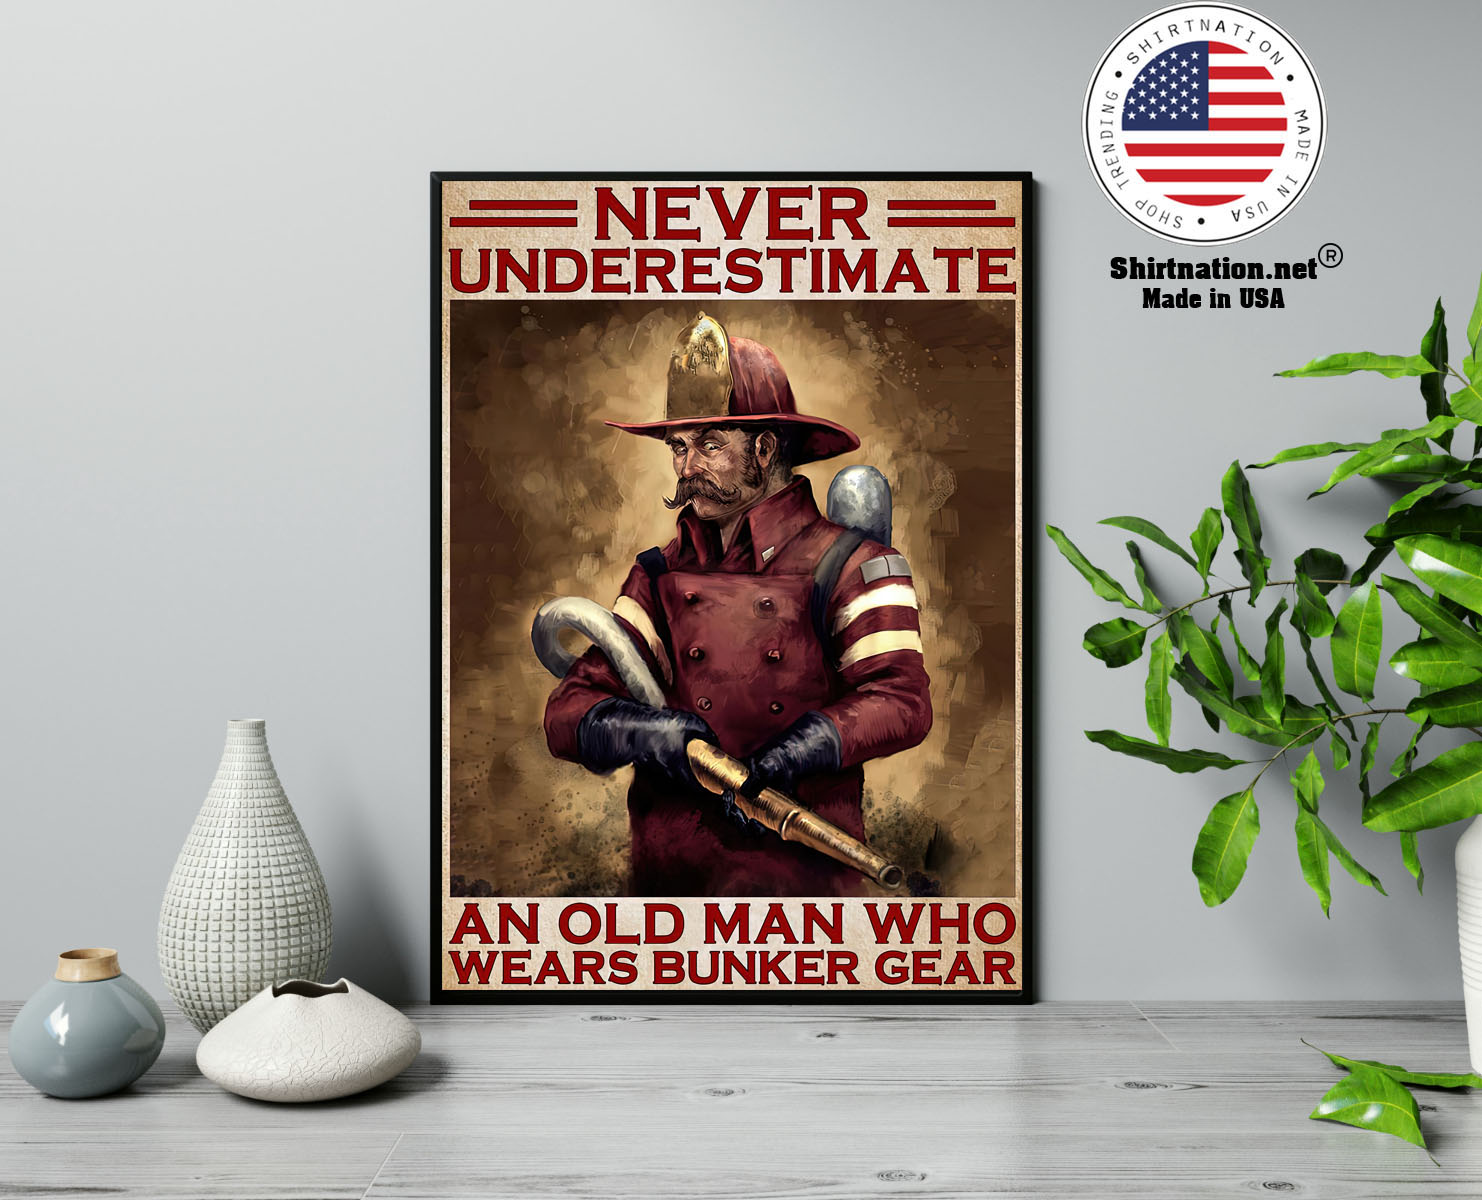 Never underestimate an old man who wears bunker gear poster 13